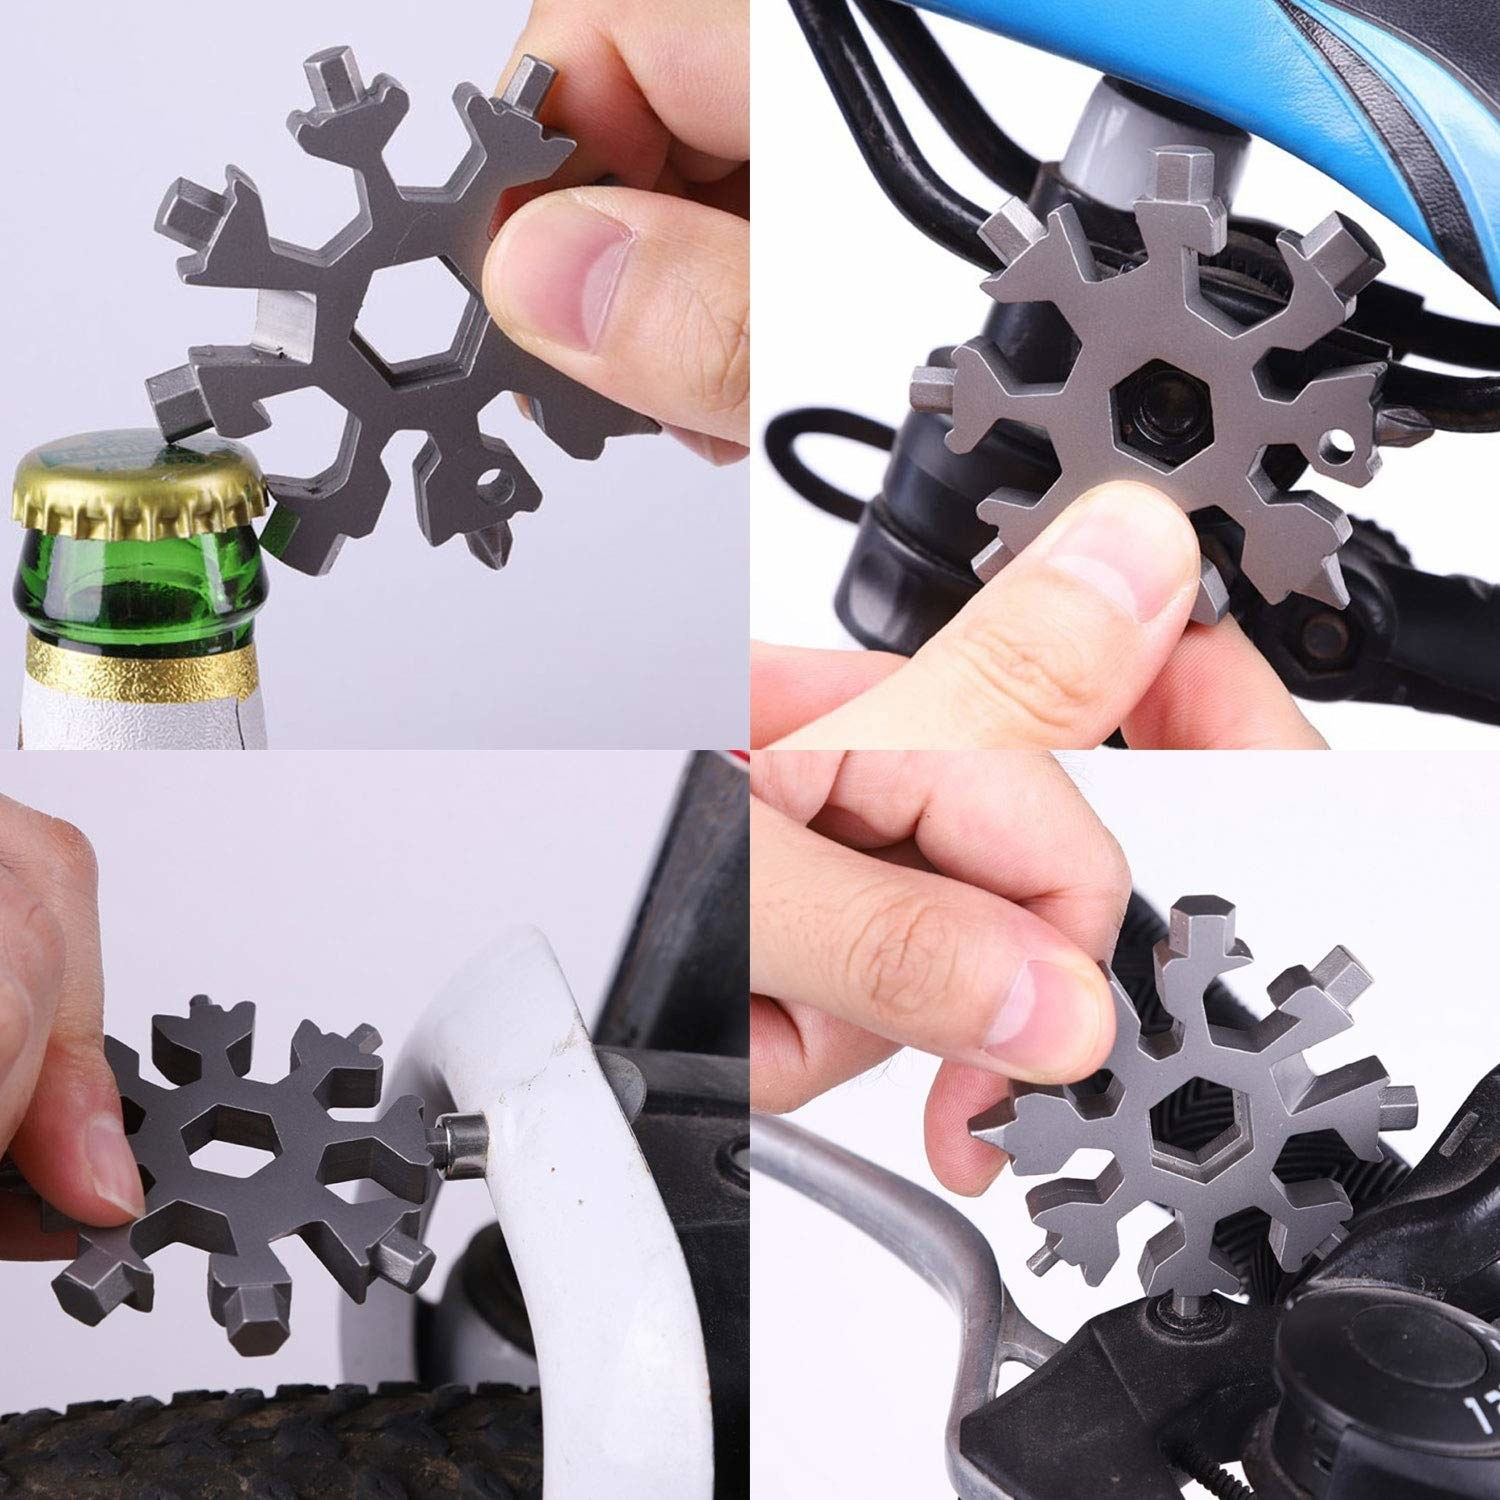 A person using the snowflake tool on a bottle and a bike